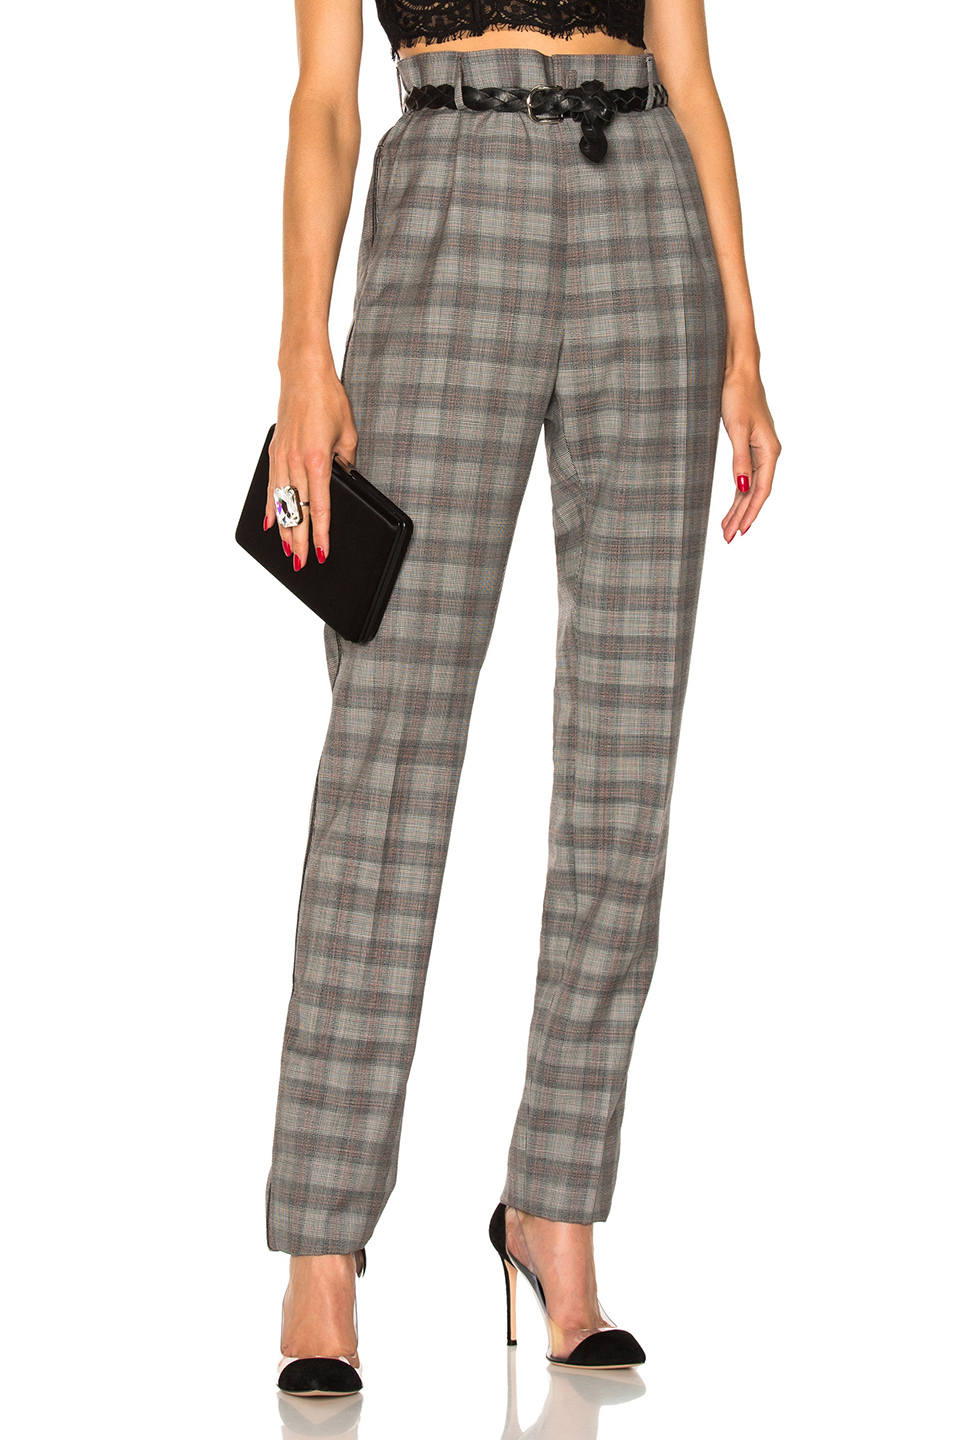 Lanvin Rivet Detail Pant in Gray,Checkered & Plaid